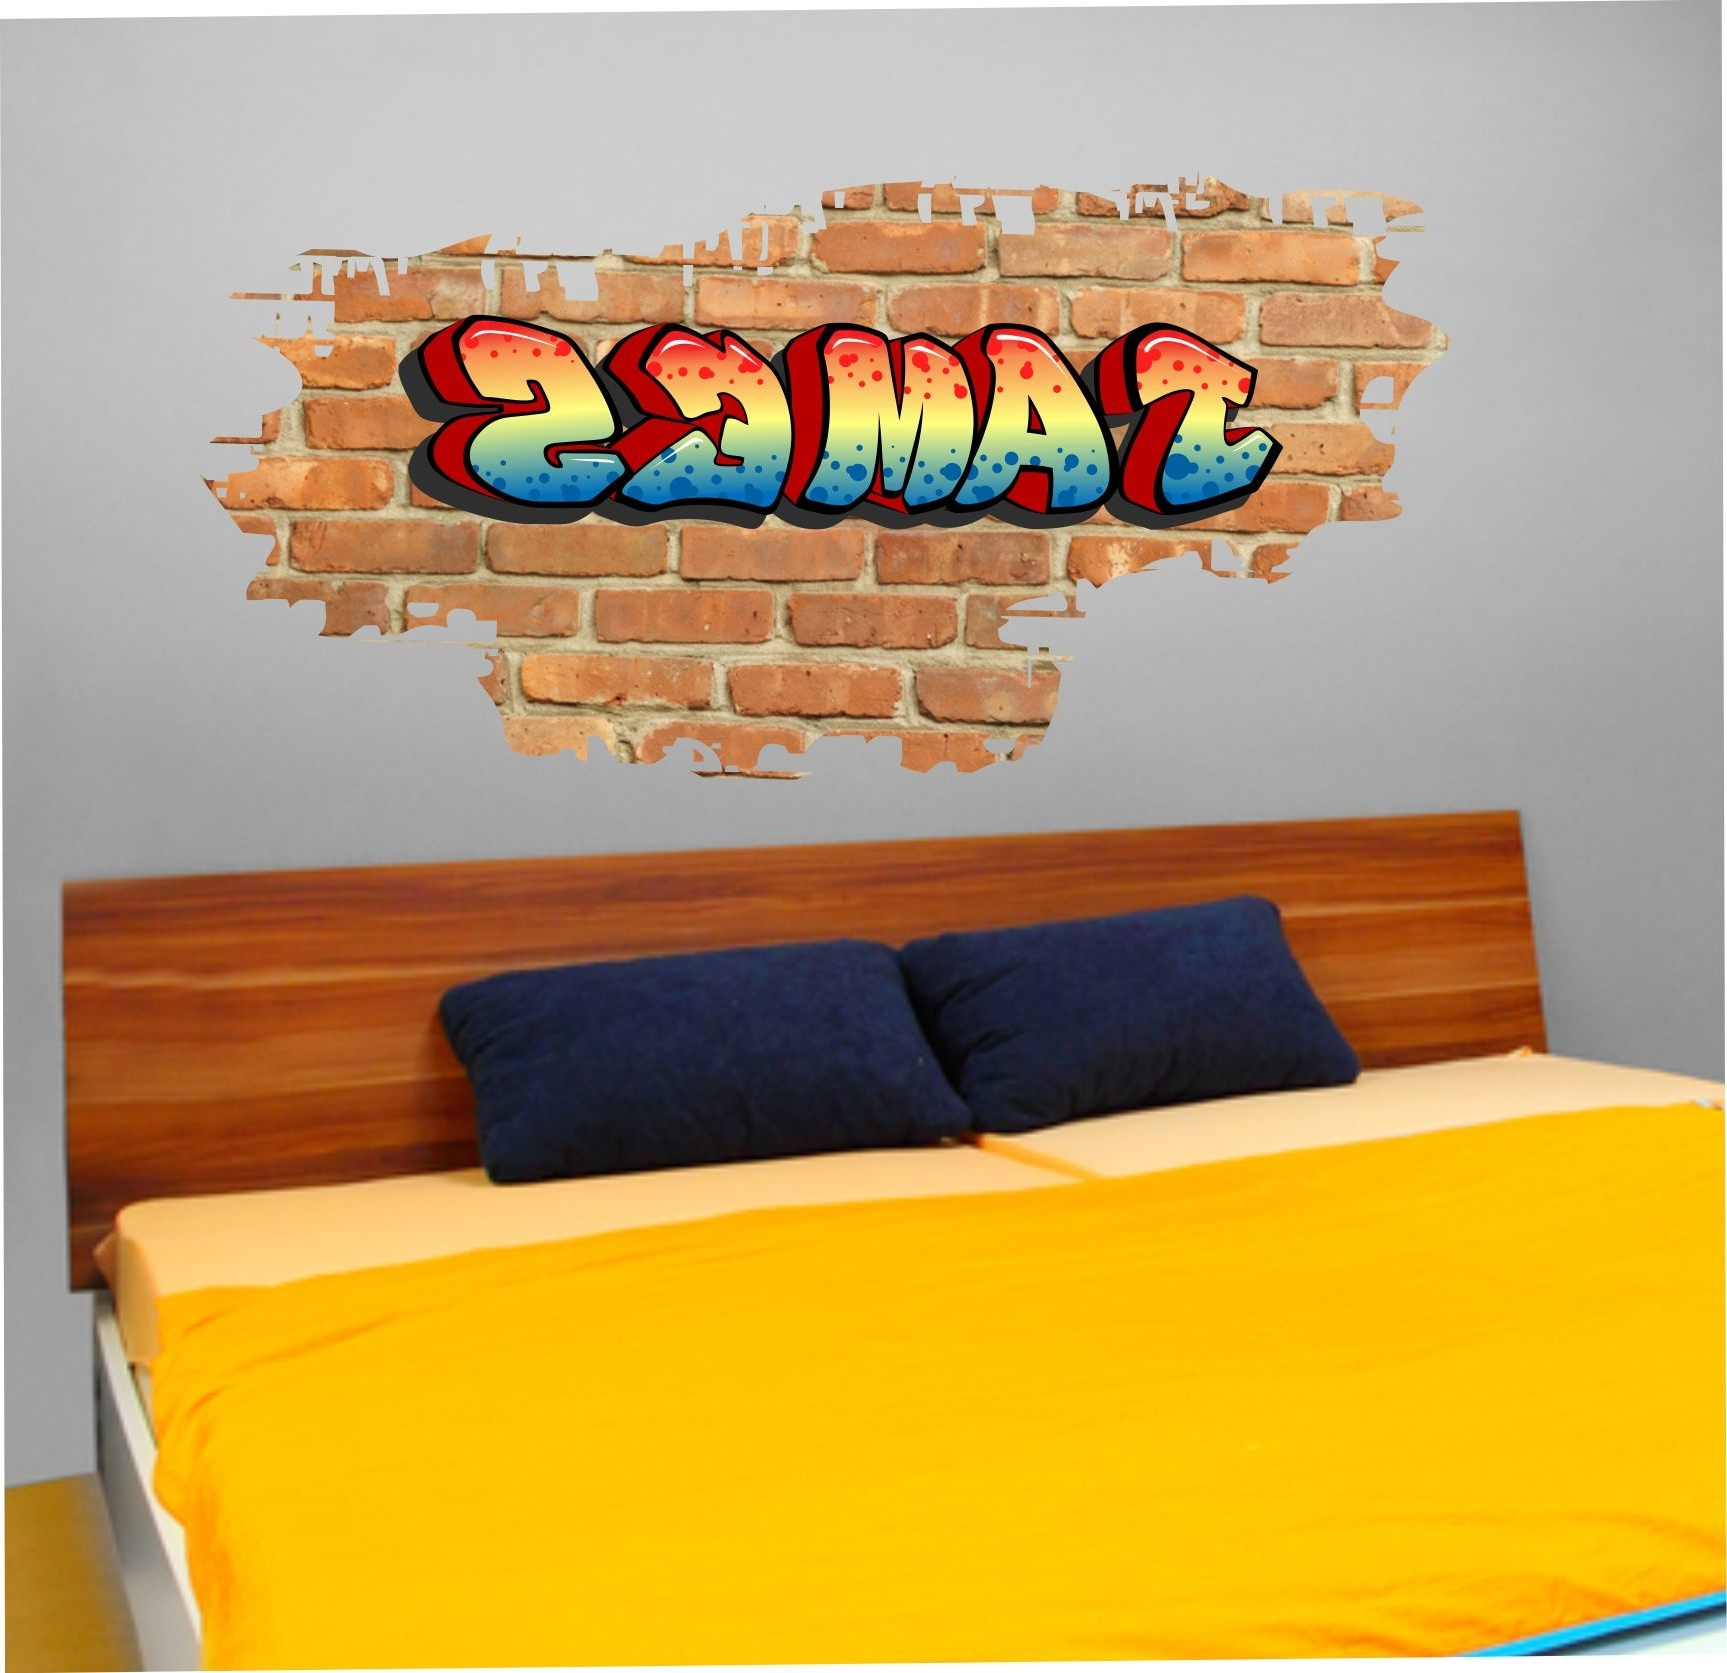 Latest Graffiti Wall Art Stickers Throughout Web Simple Graffiti Wall Sticker – Wall Art And Wall Decoration Ideas (View 9 of 15)